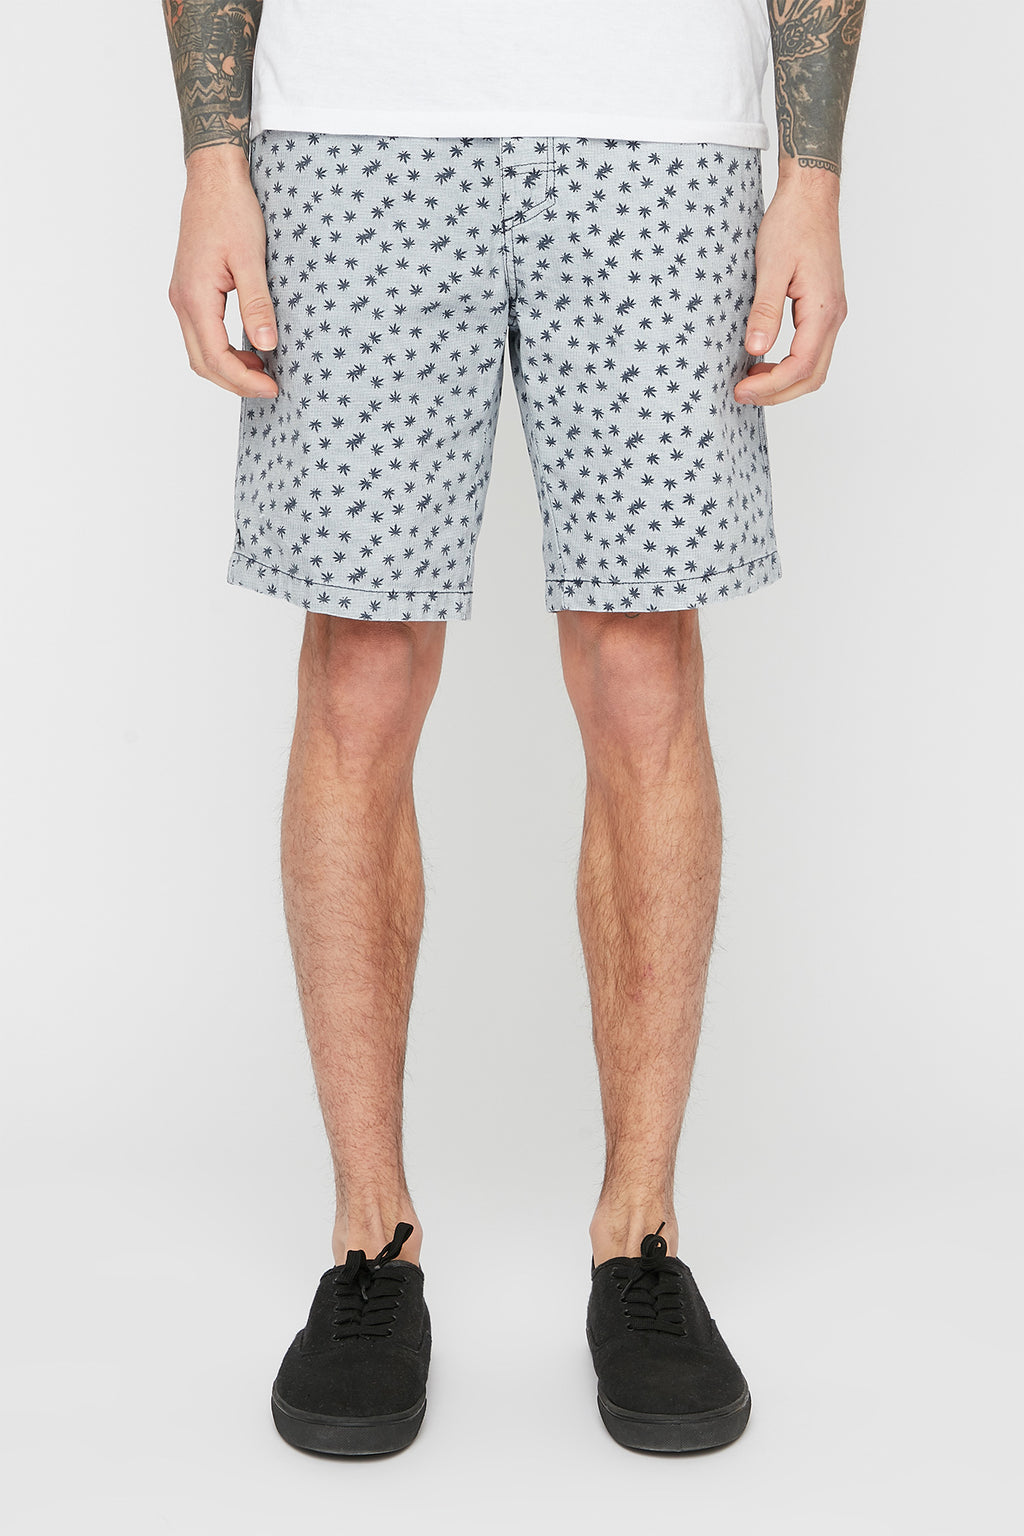 West49 Mens Leaf Pattern Short